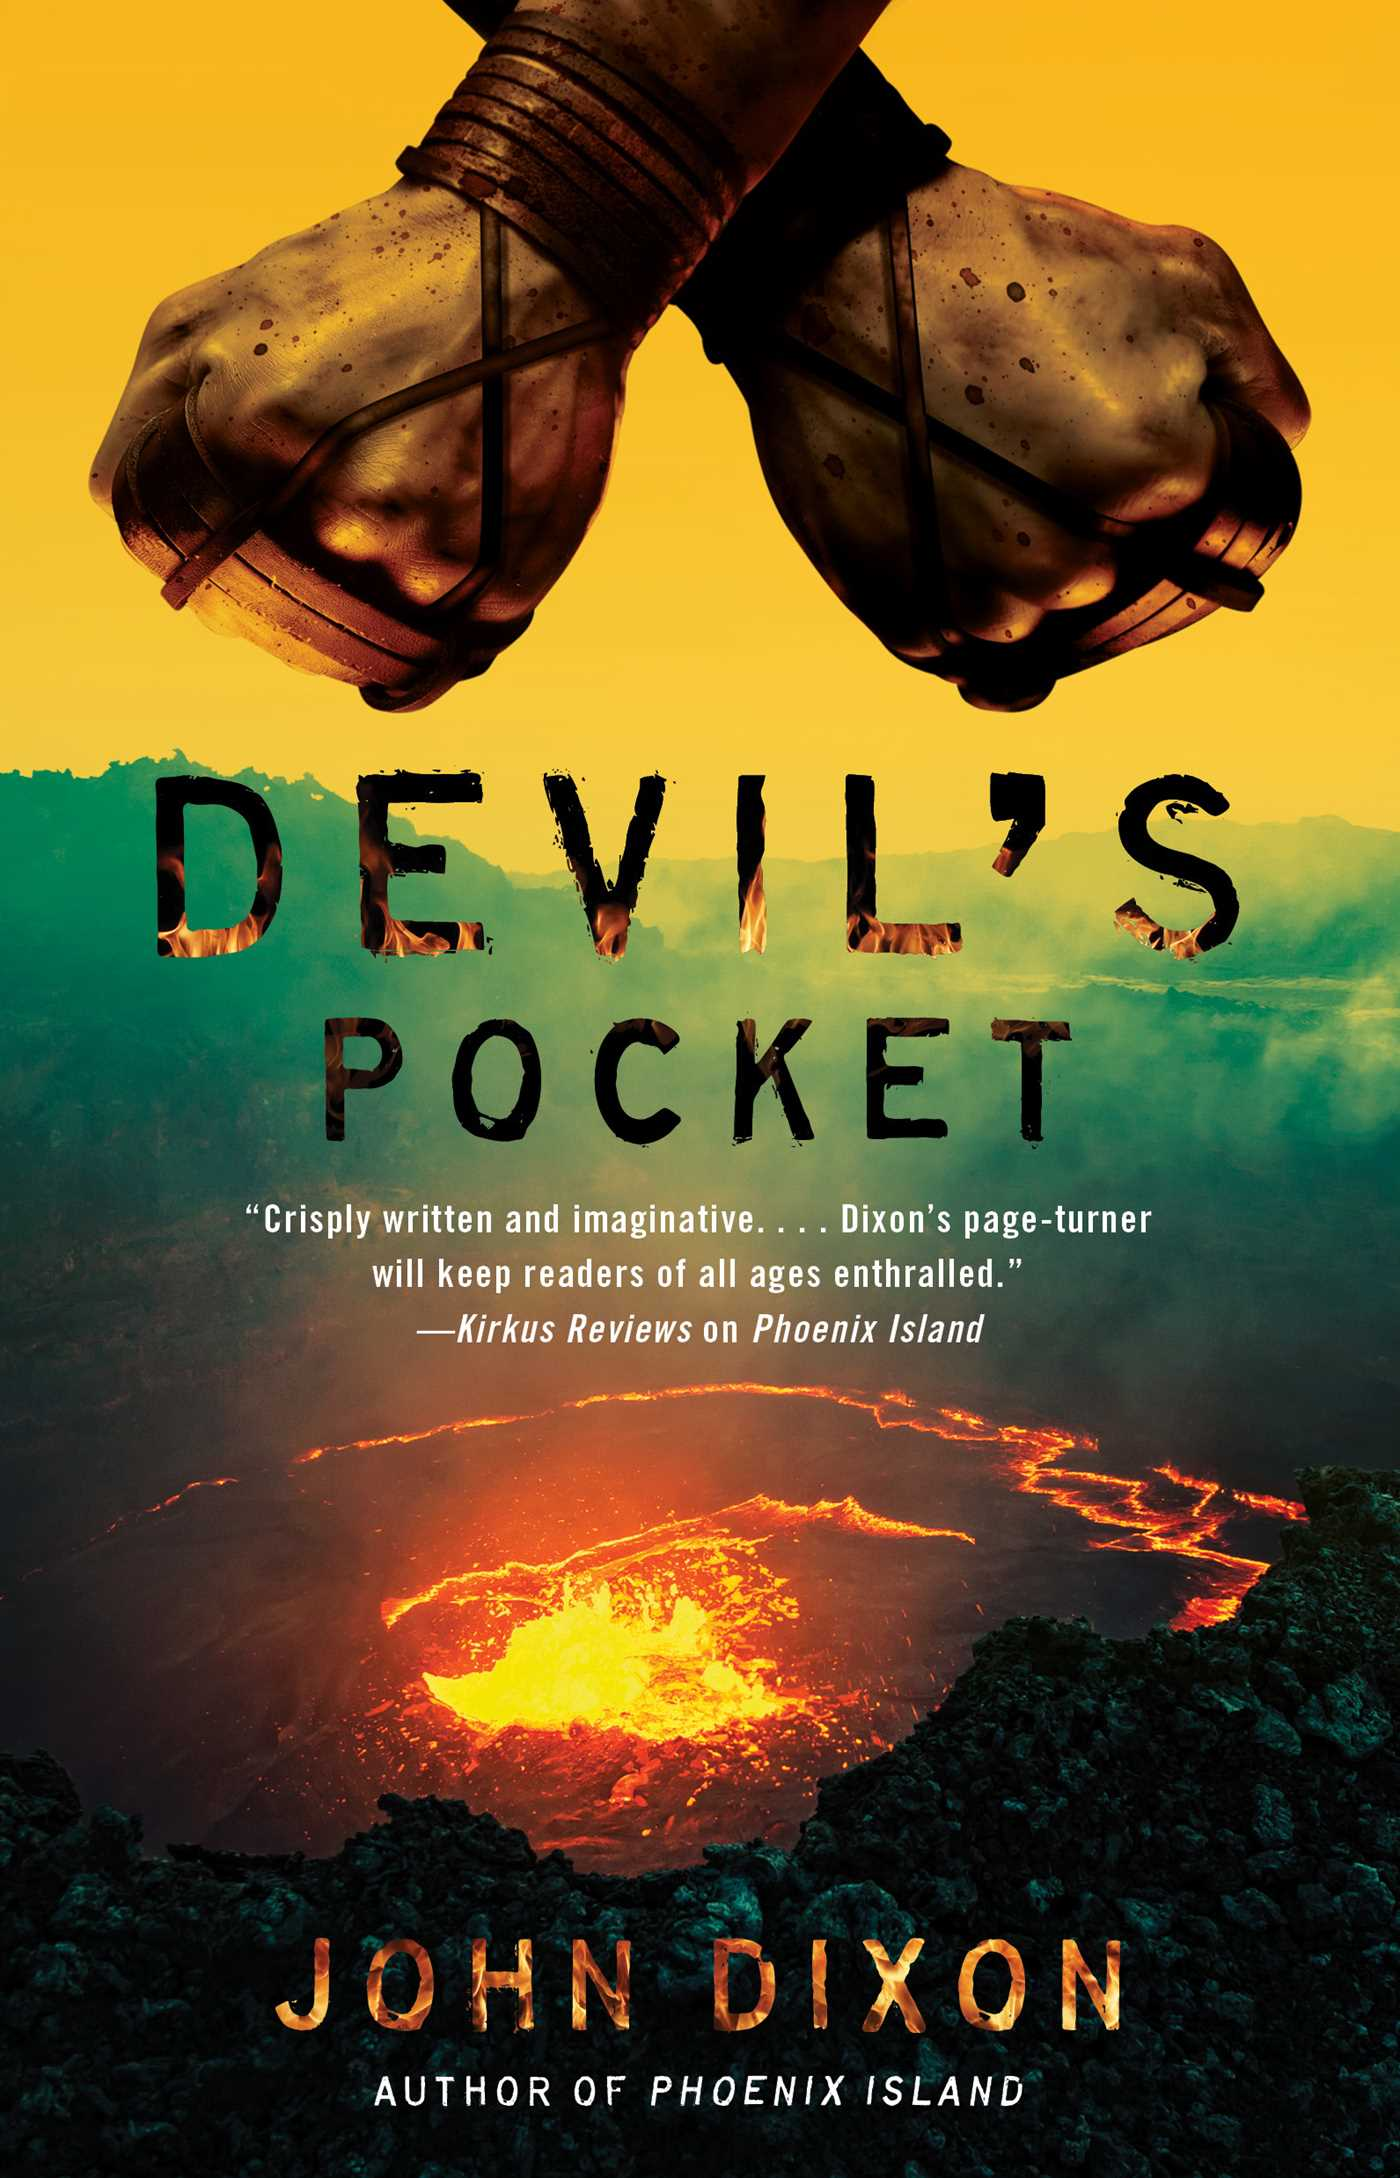 Devils-pocket-9781476738666_hr